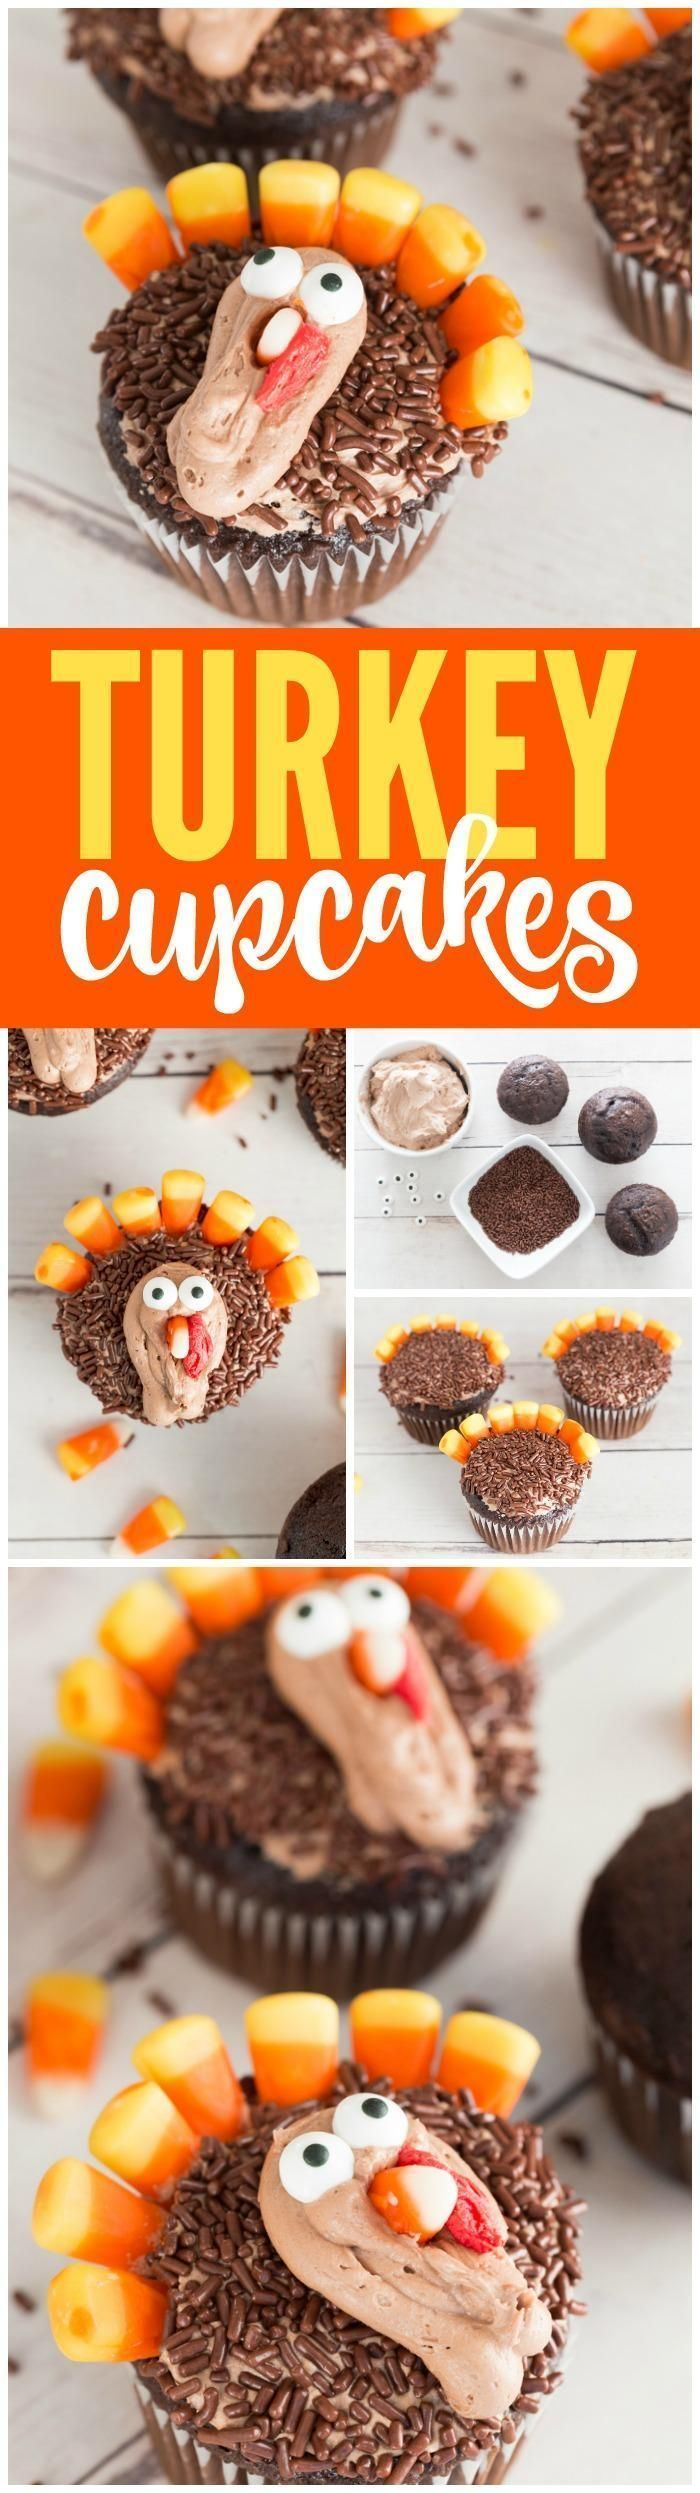 Here is an Easy Turkey Cupcakes Recipe for Thanksgiving! This fun  Thanksgiving Dessert Recipe for